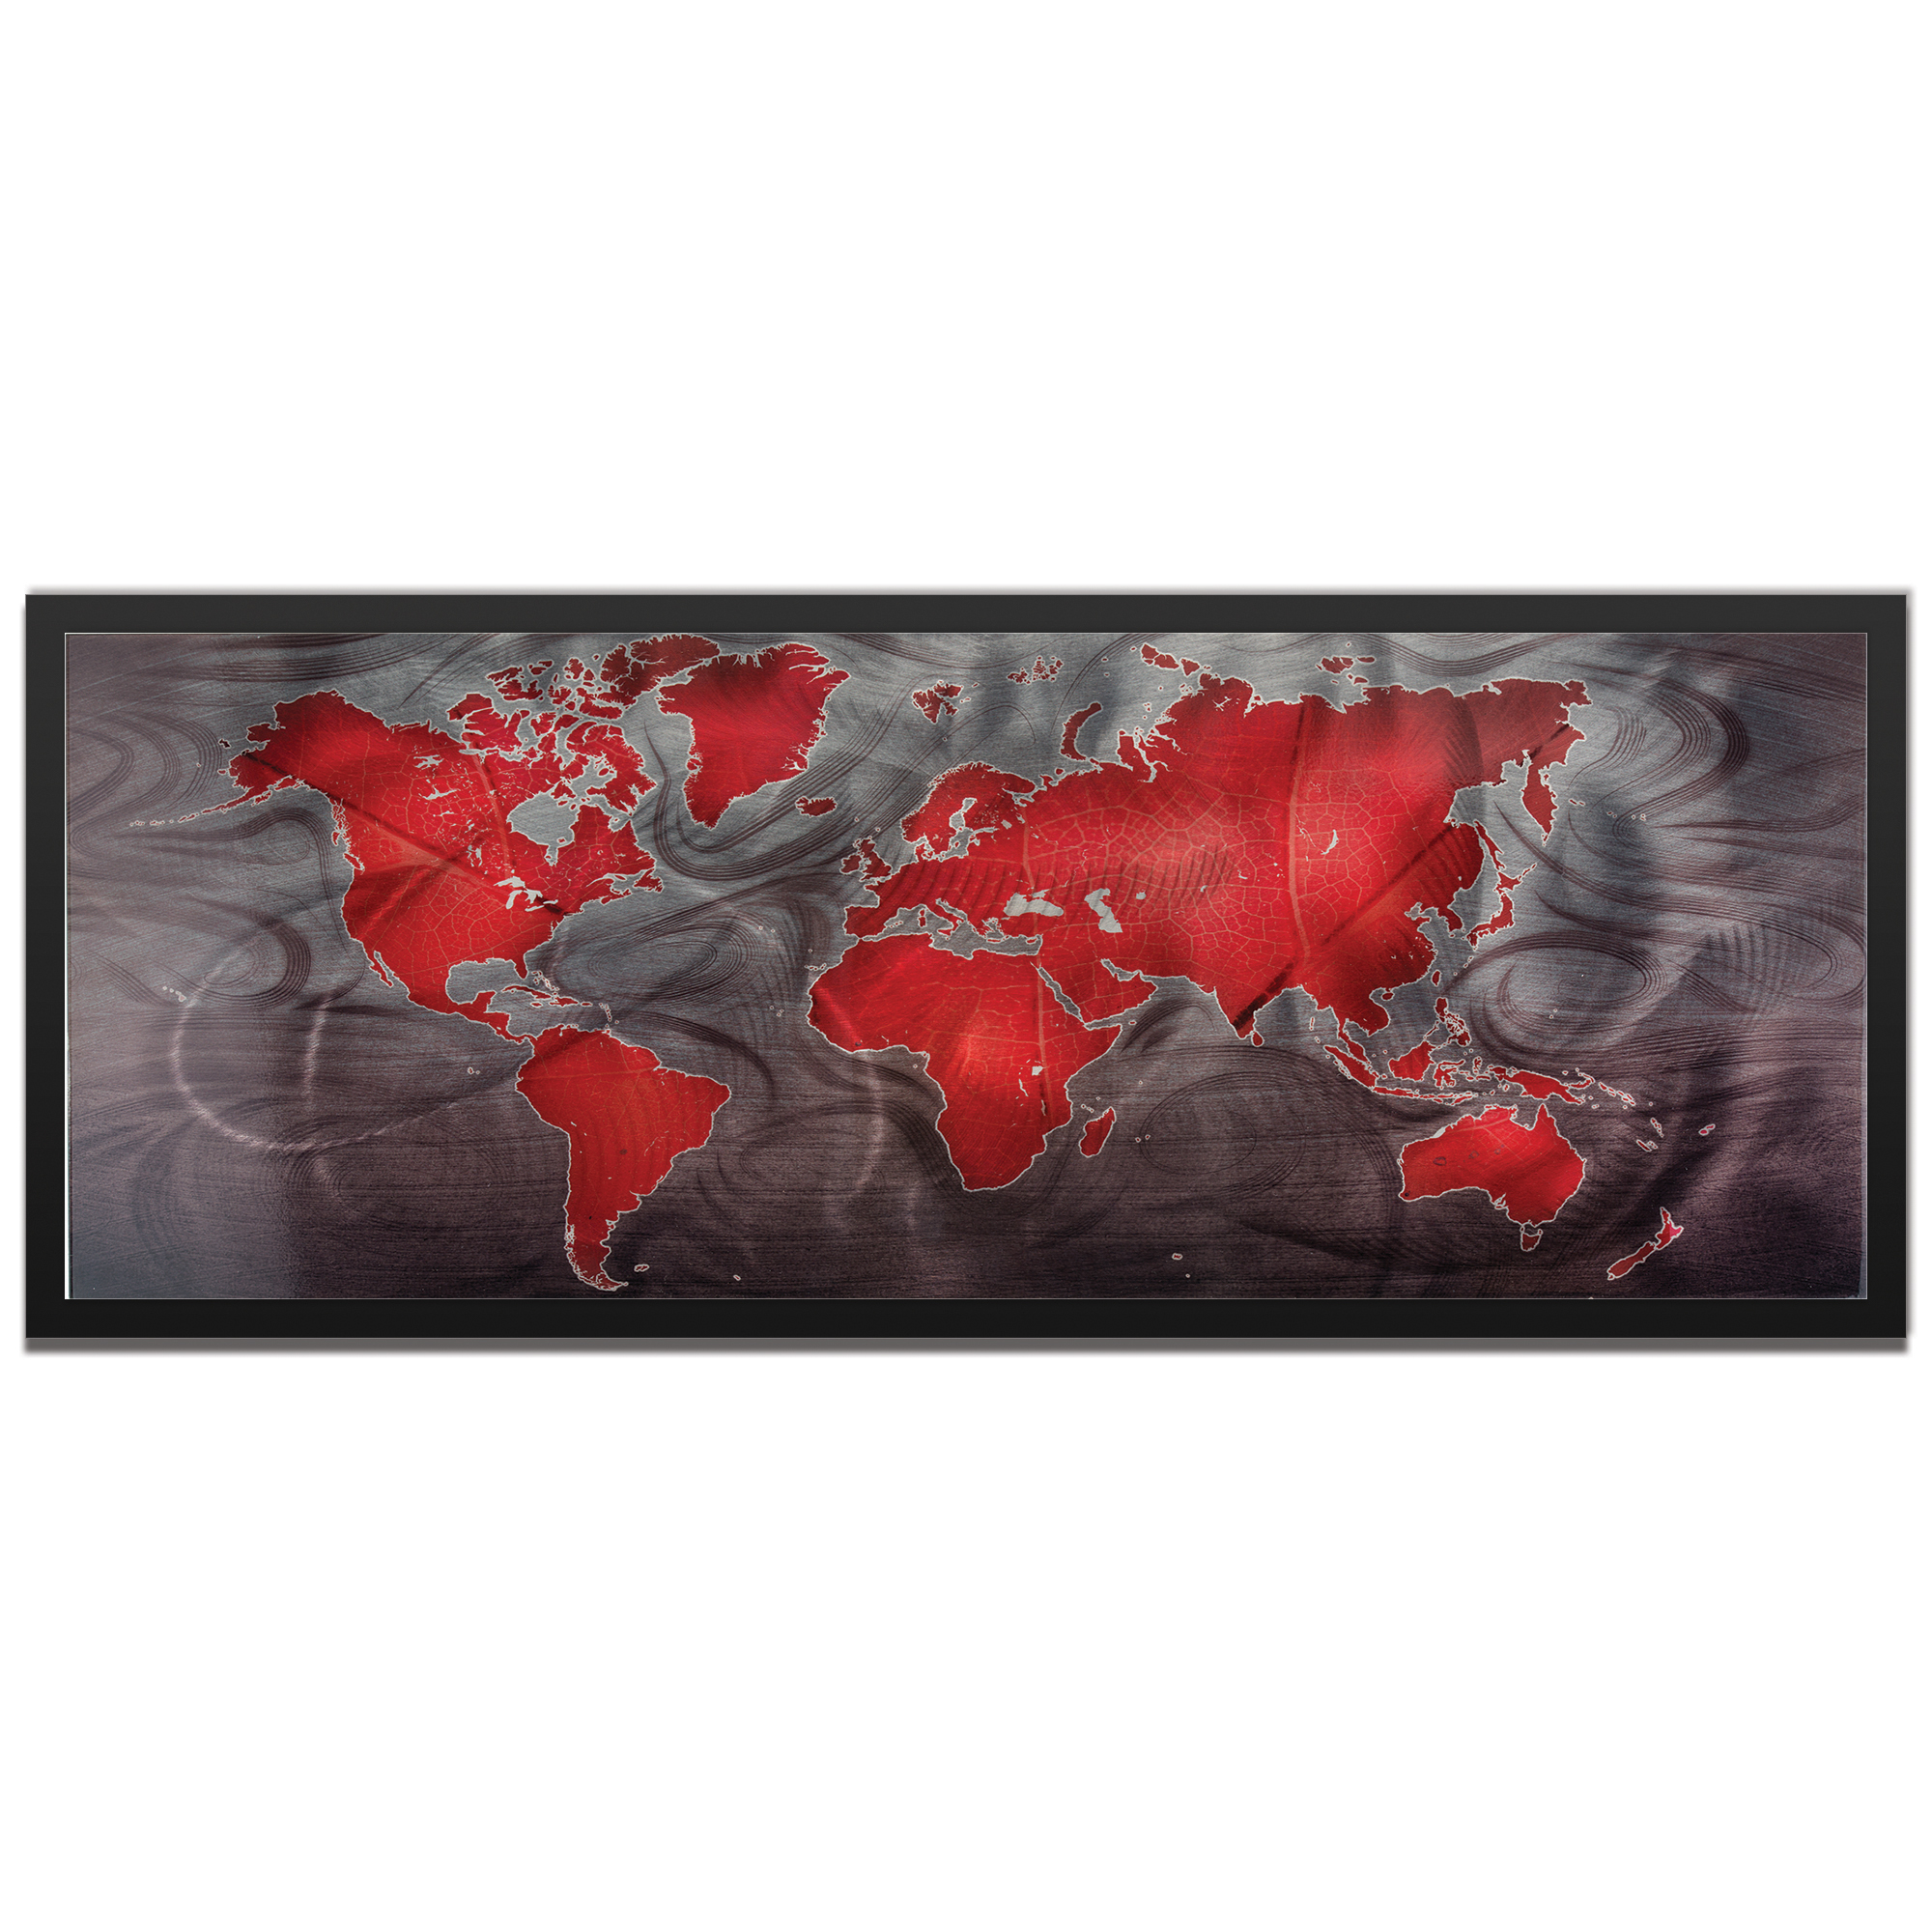 Amber LaRosa 'Red Pewter Land and Sea Framed' 48in x 19in Traditional World Map Art on Colored Metal